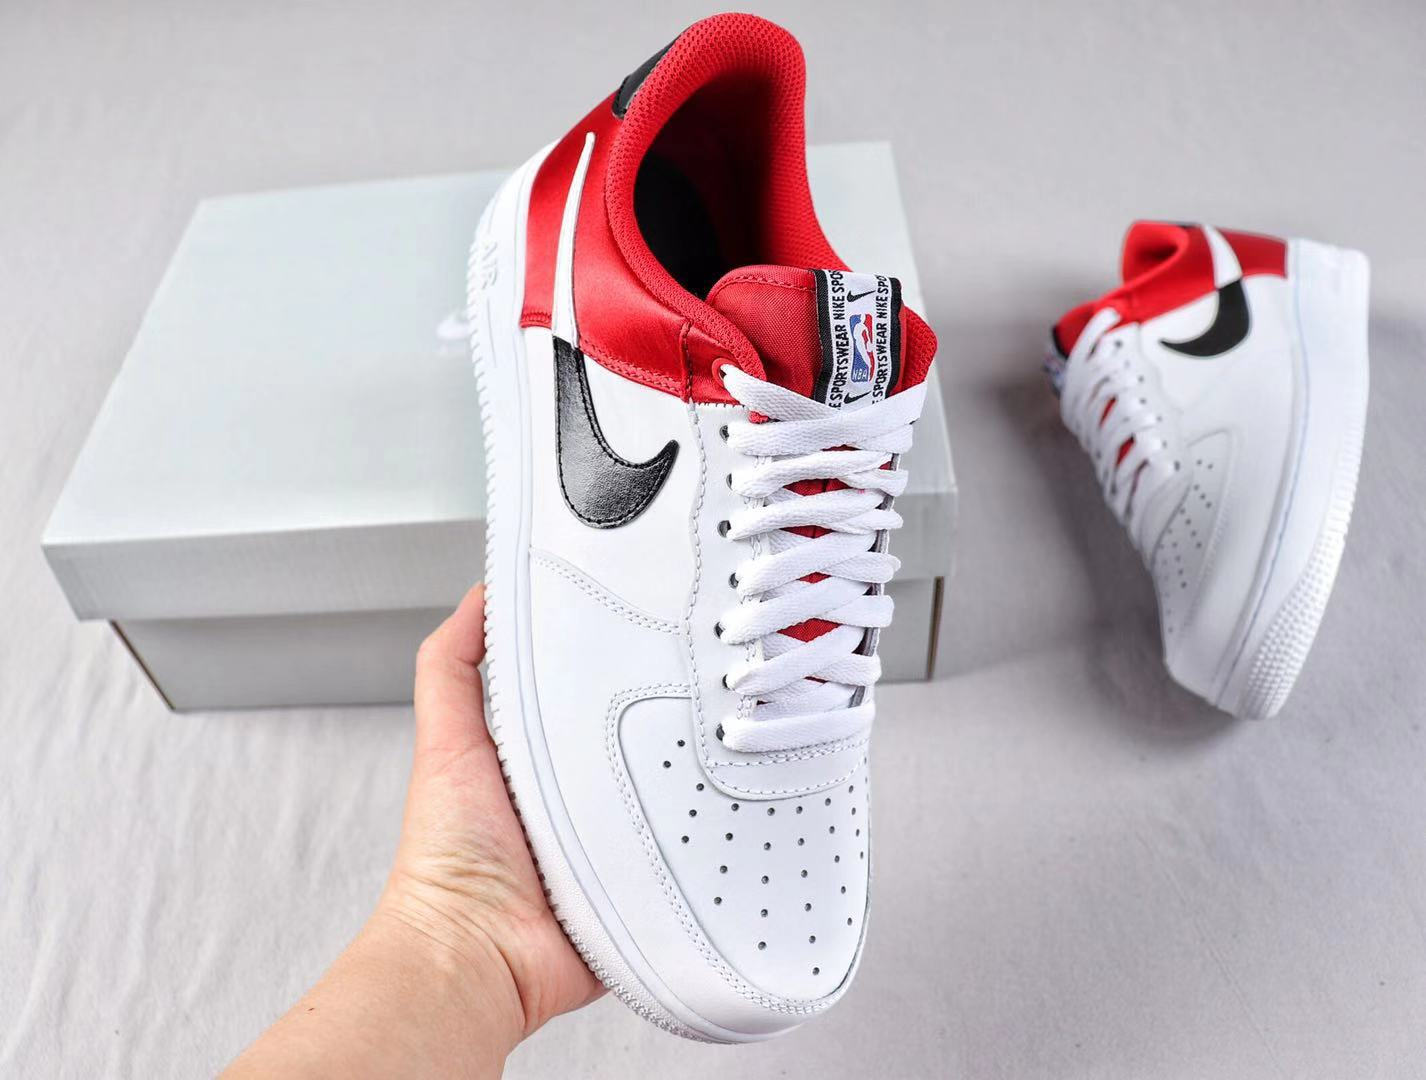 Nike Air Force 1'07 Low University Red/White-Black Sneakers To Buy BQ4420-600